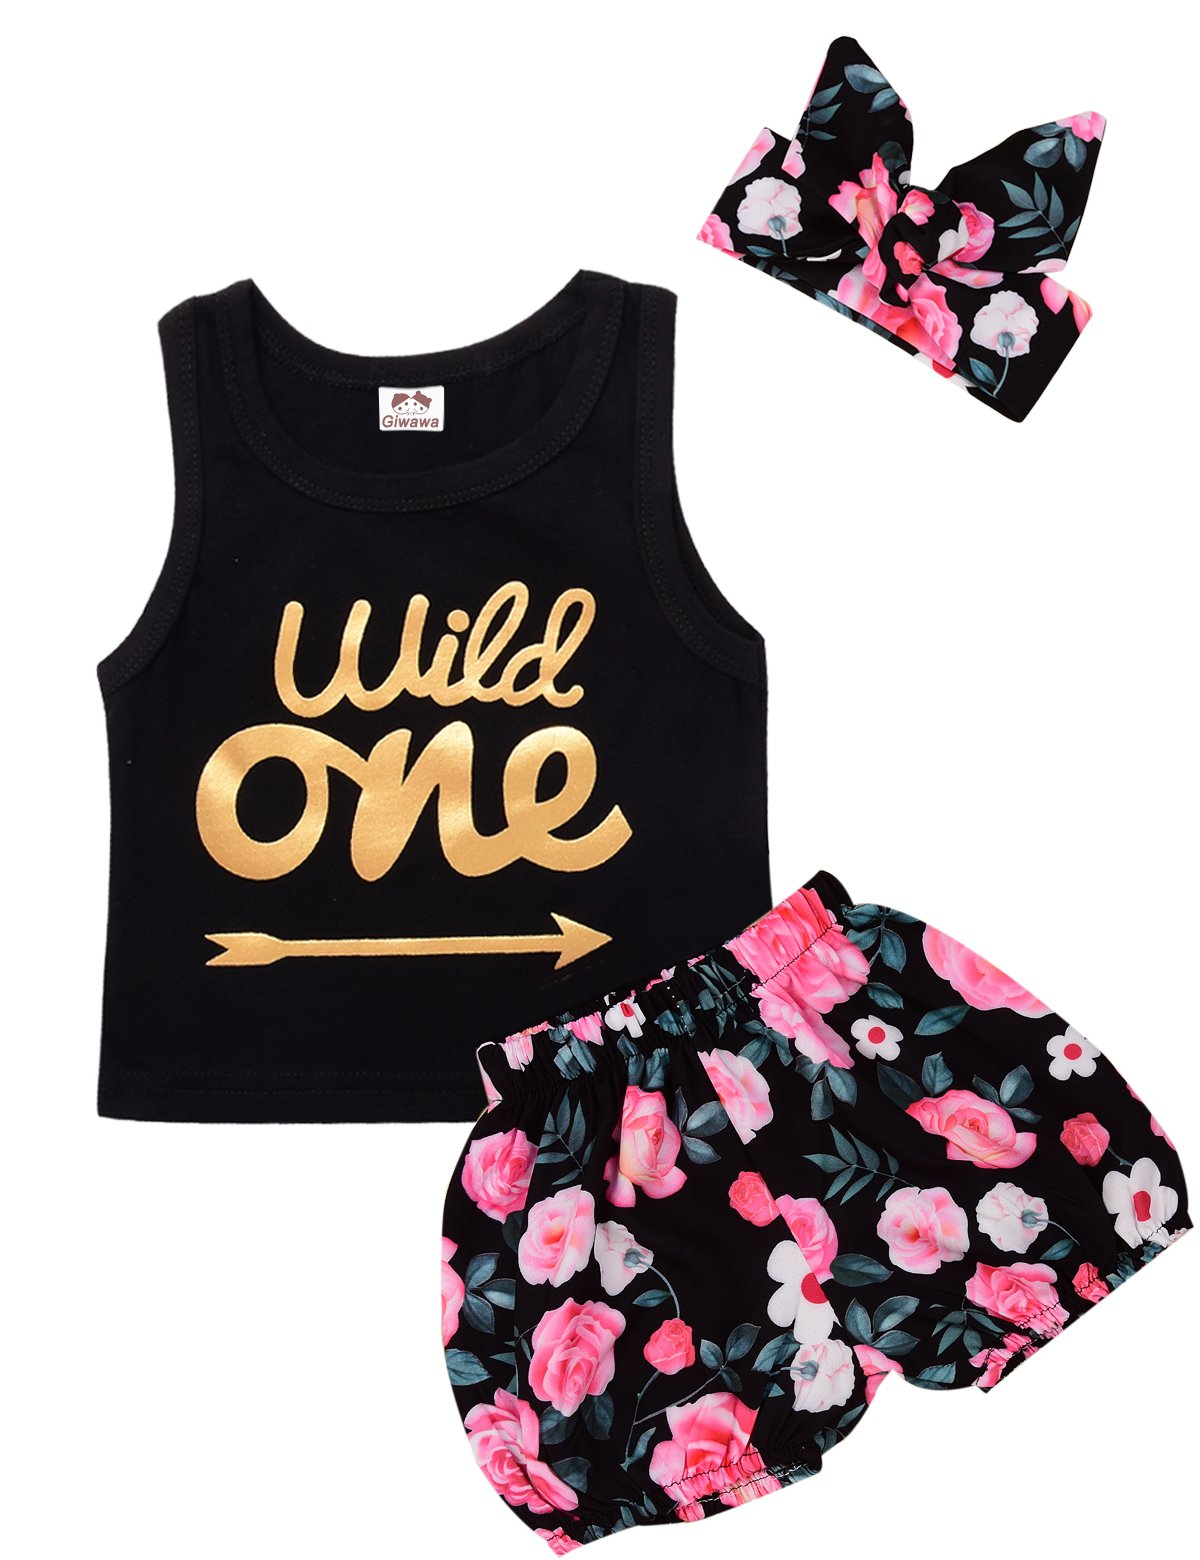 Giwawa 3Pcs Baby Girls Floral Vest Skirt Outfit Set With Headband (12-18 Months, Black)